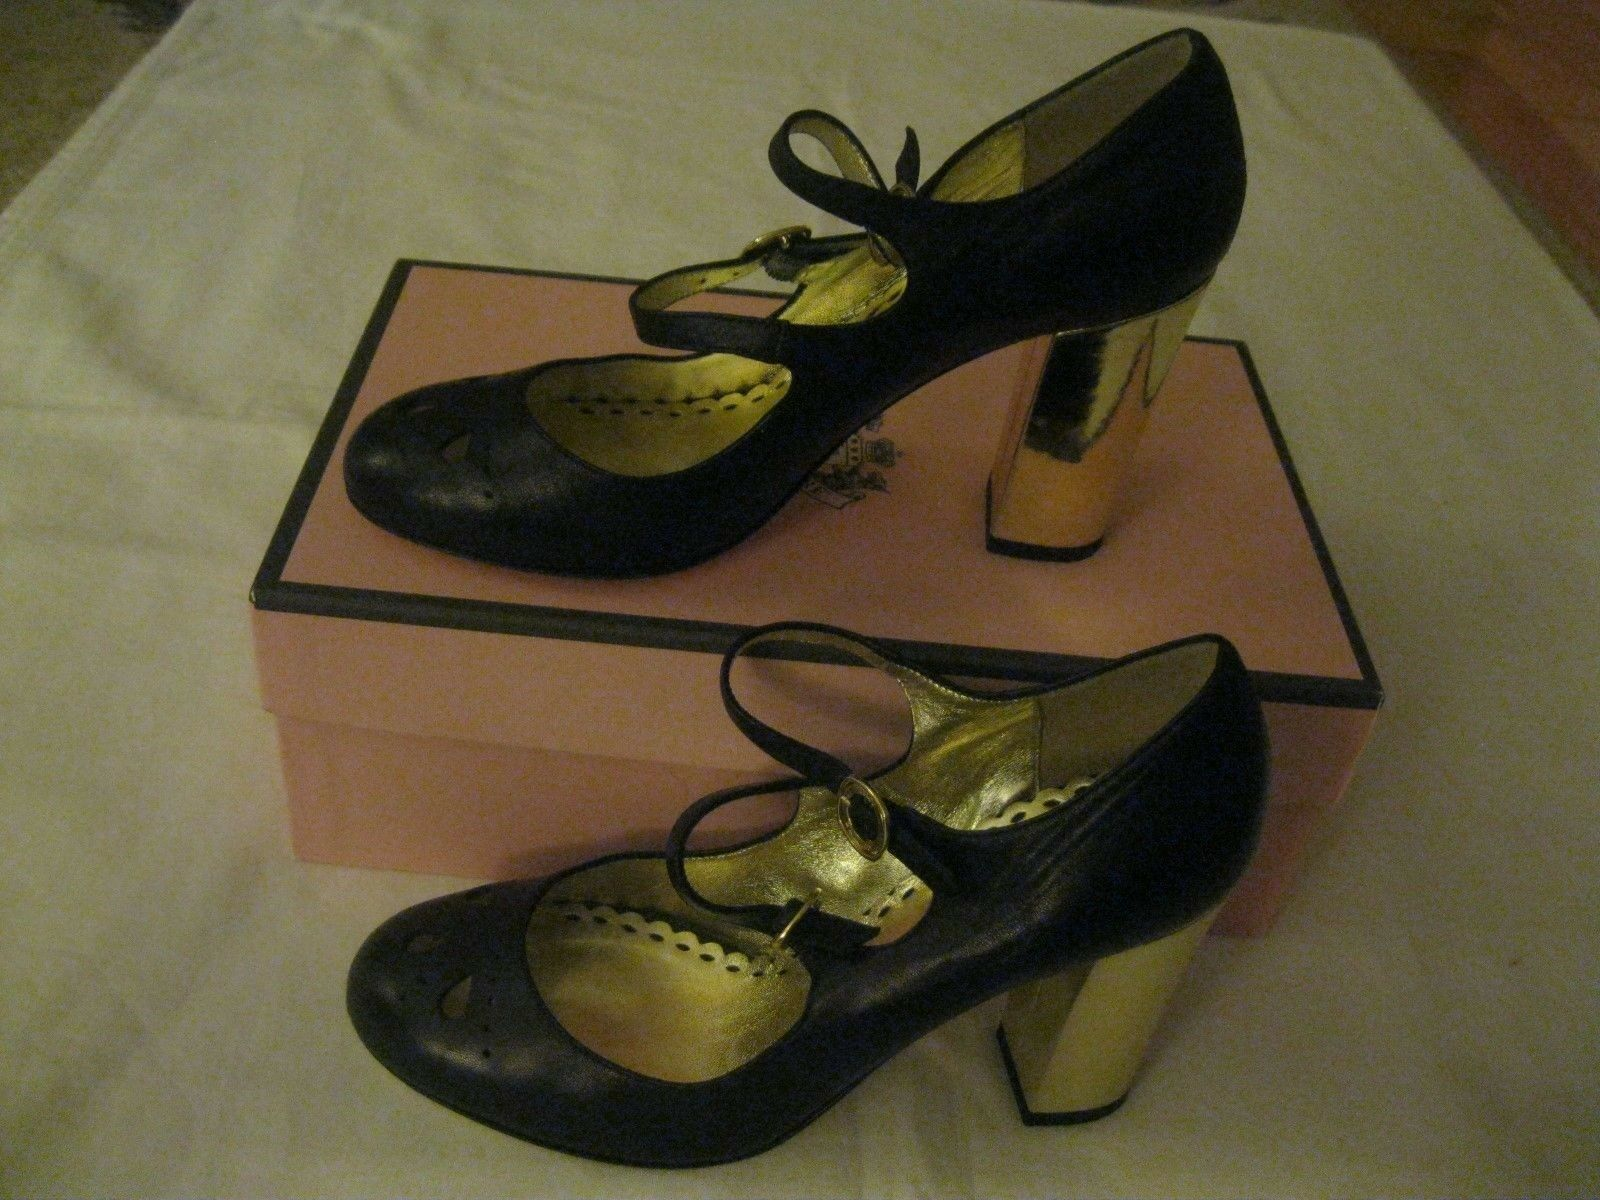 Juicy Couture Women's Black Leather Double Strap gold High Heel shoes Size 7.5